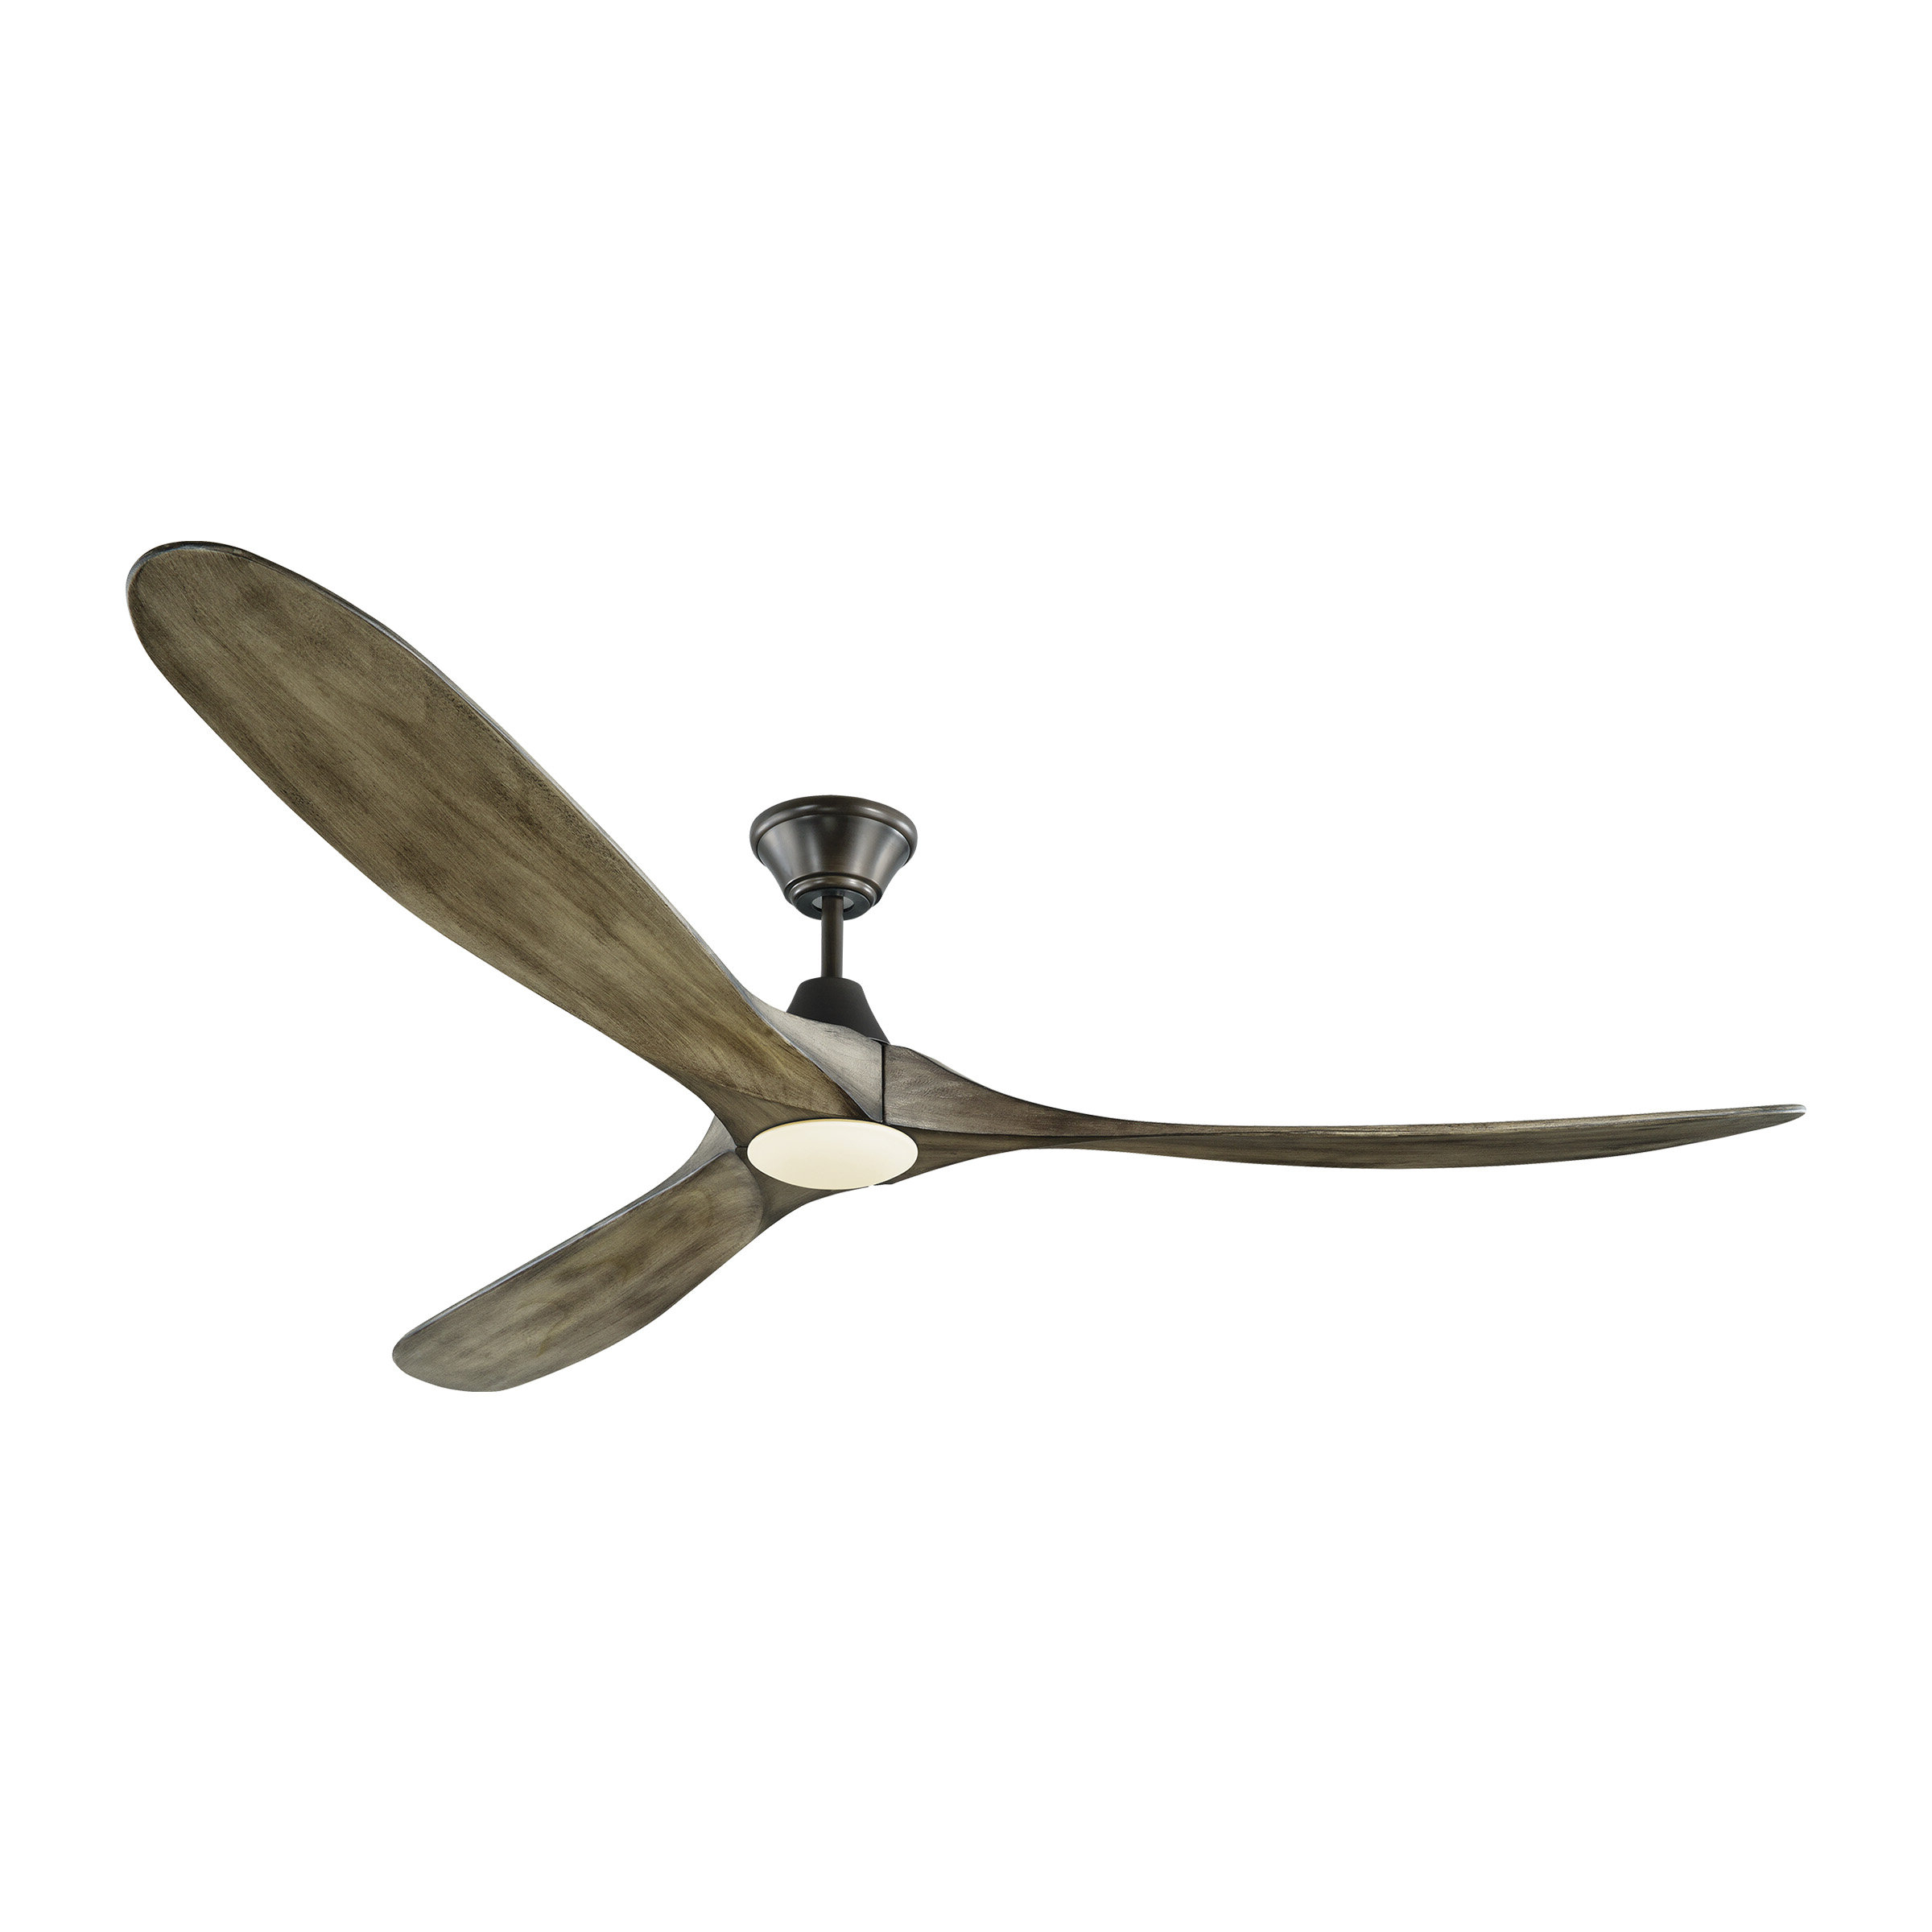 "Well Known 70"" Bohner 3 Blade Led Ceiling Fan With Remote, Light Kit Included Throughout Paige 3 Blade Led Ceiling Fans (View 19 of 20)"